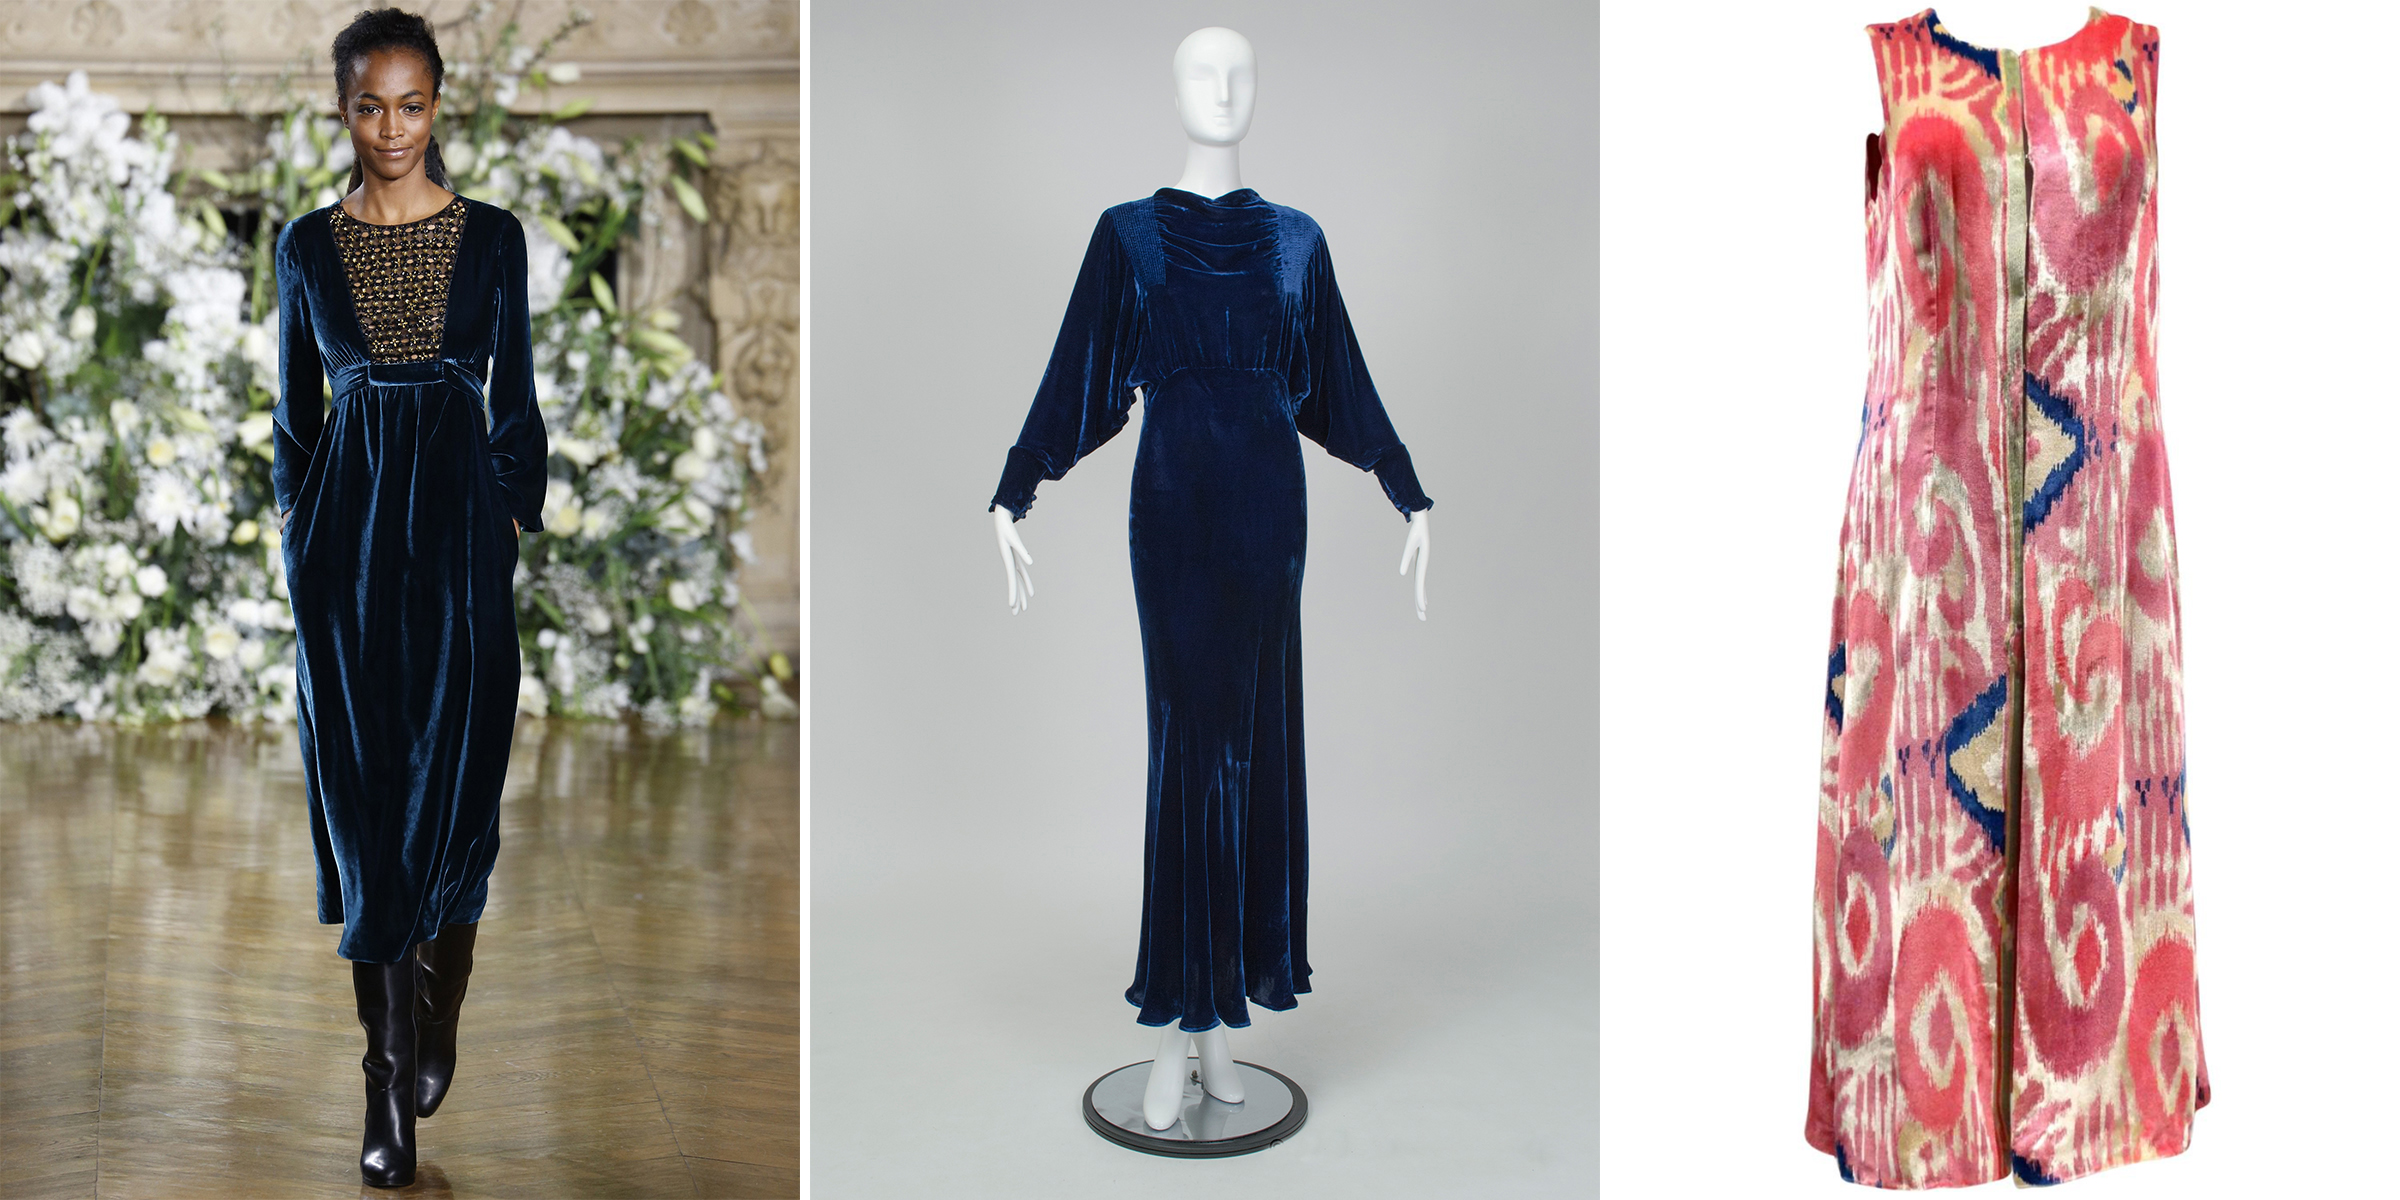 37a87bceab8 ... Yves Saint Laurent mink stole for I.Magnin at Fashion by Robert Black  (right). Velvet Is Back. A Vanessa Seward gown (A/W 2016) compared with a  similar ...